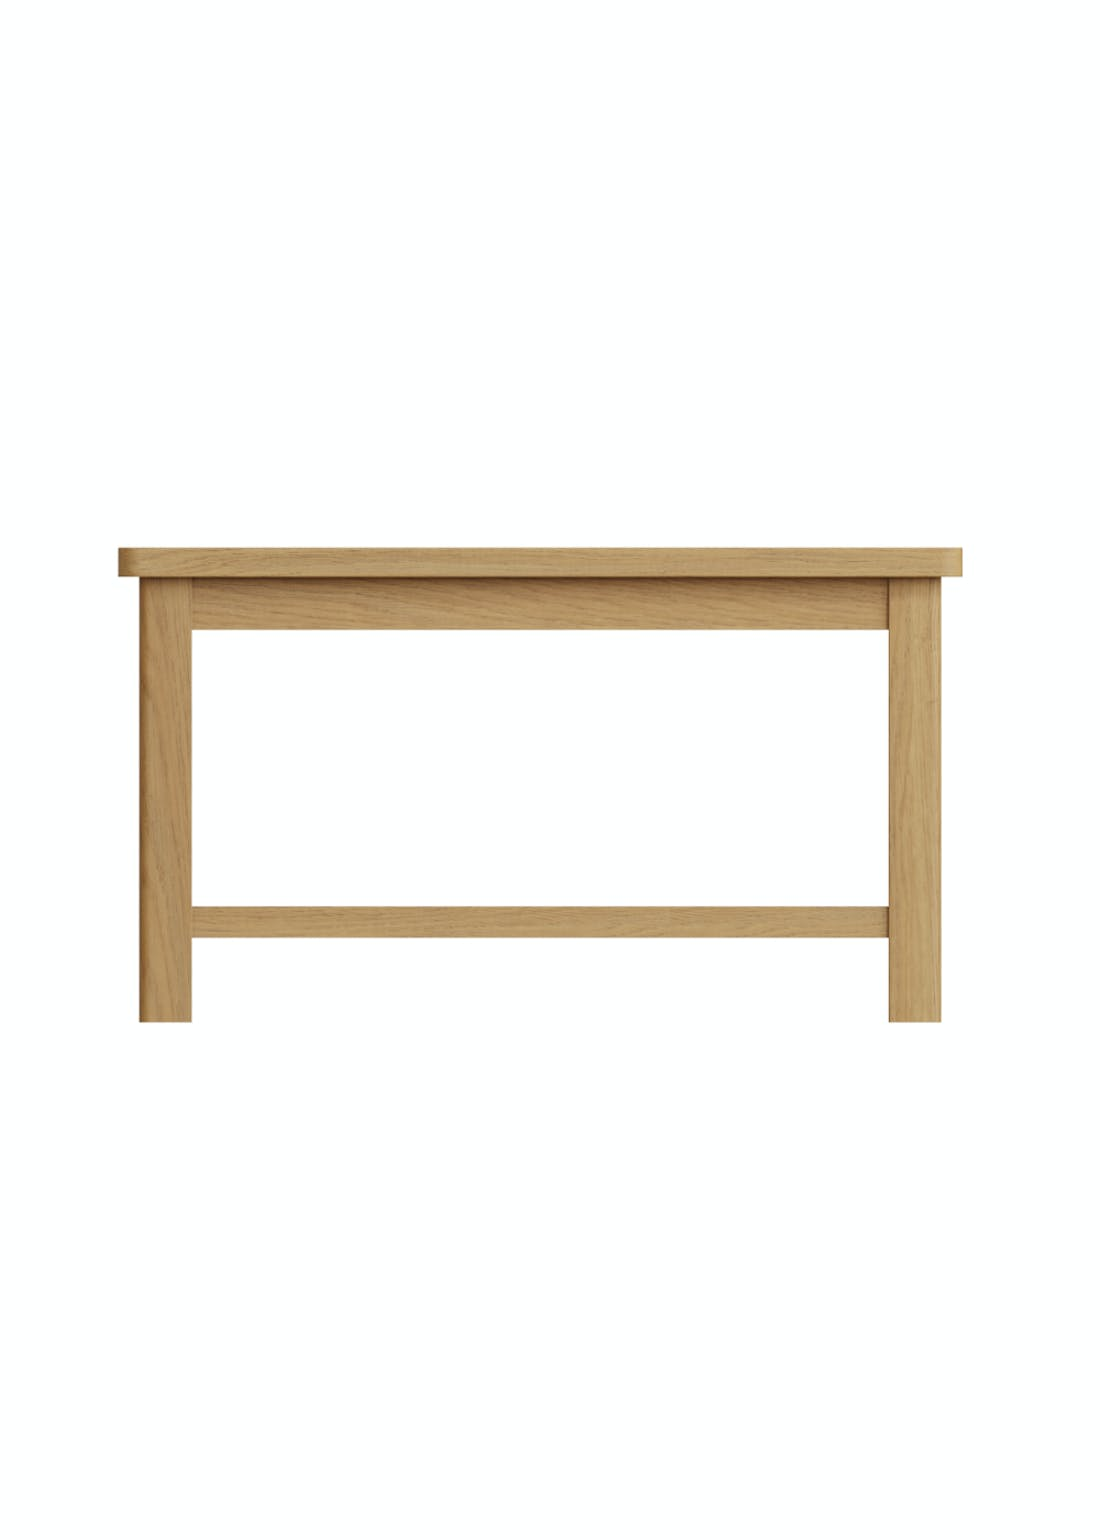 Interiors Direct Reanne Coffee Table (80cm x 45cm x 45cm)